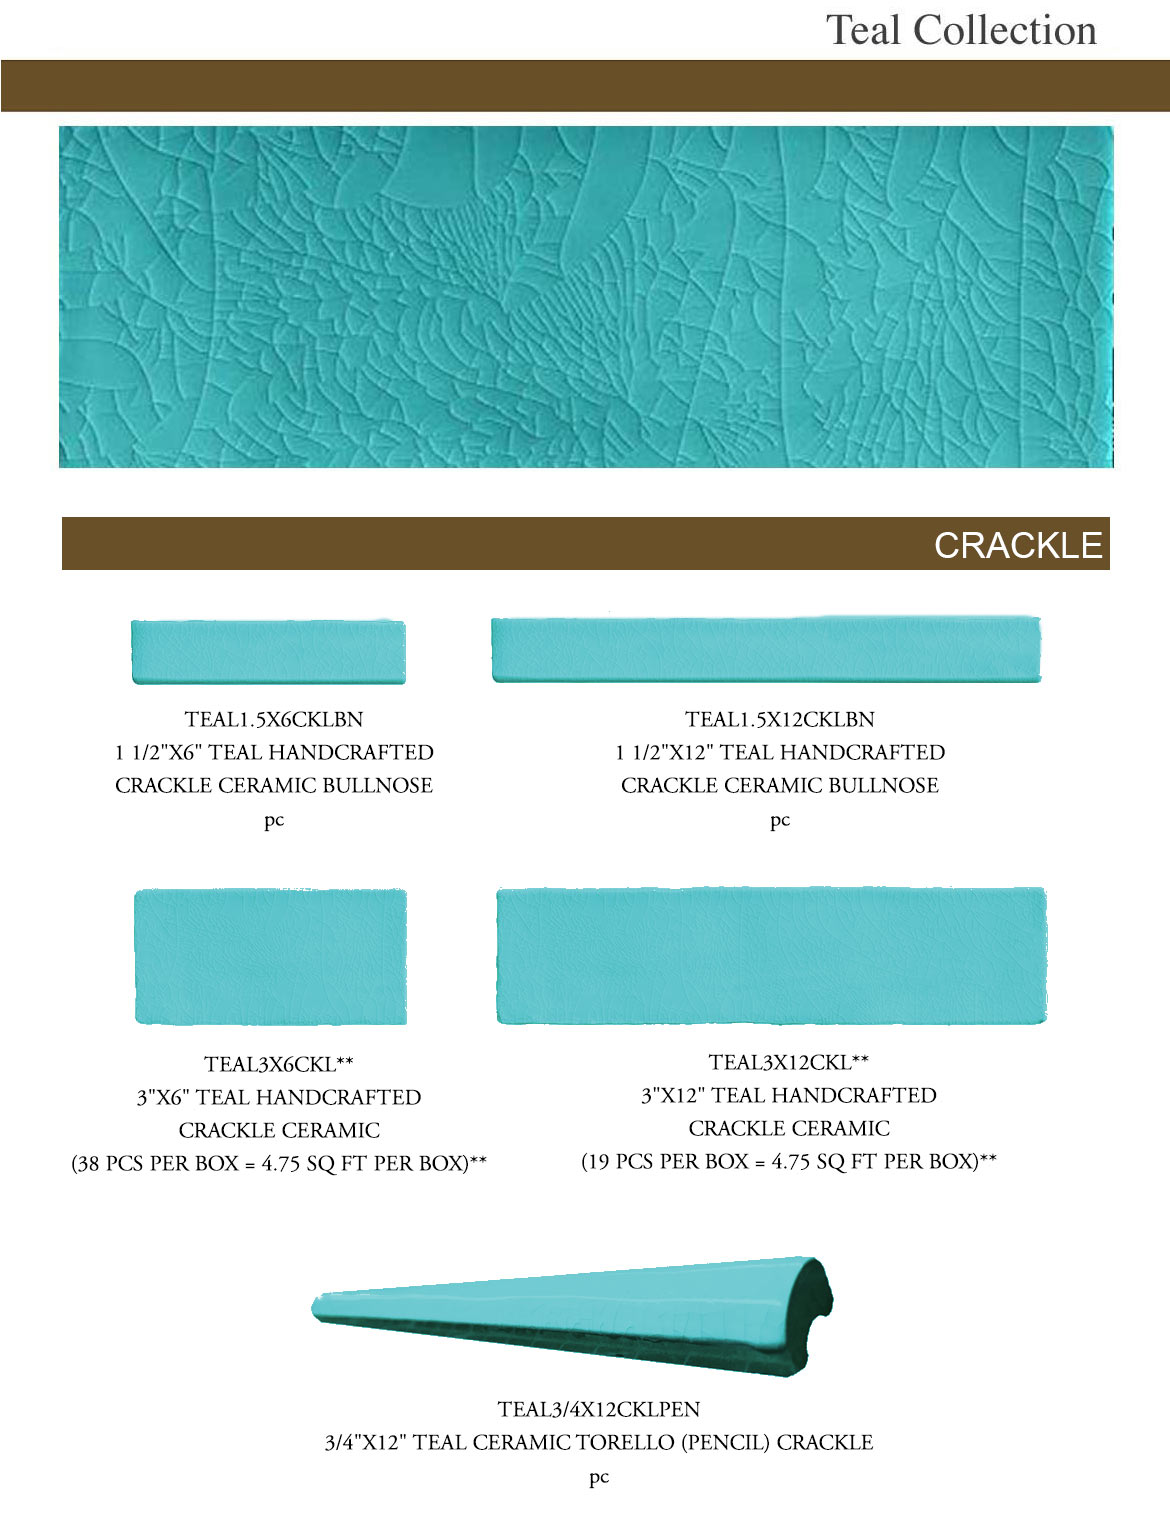 teal-Collection-rev